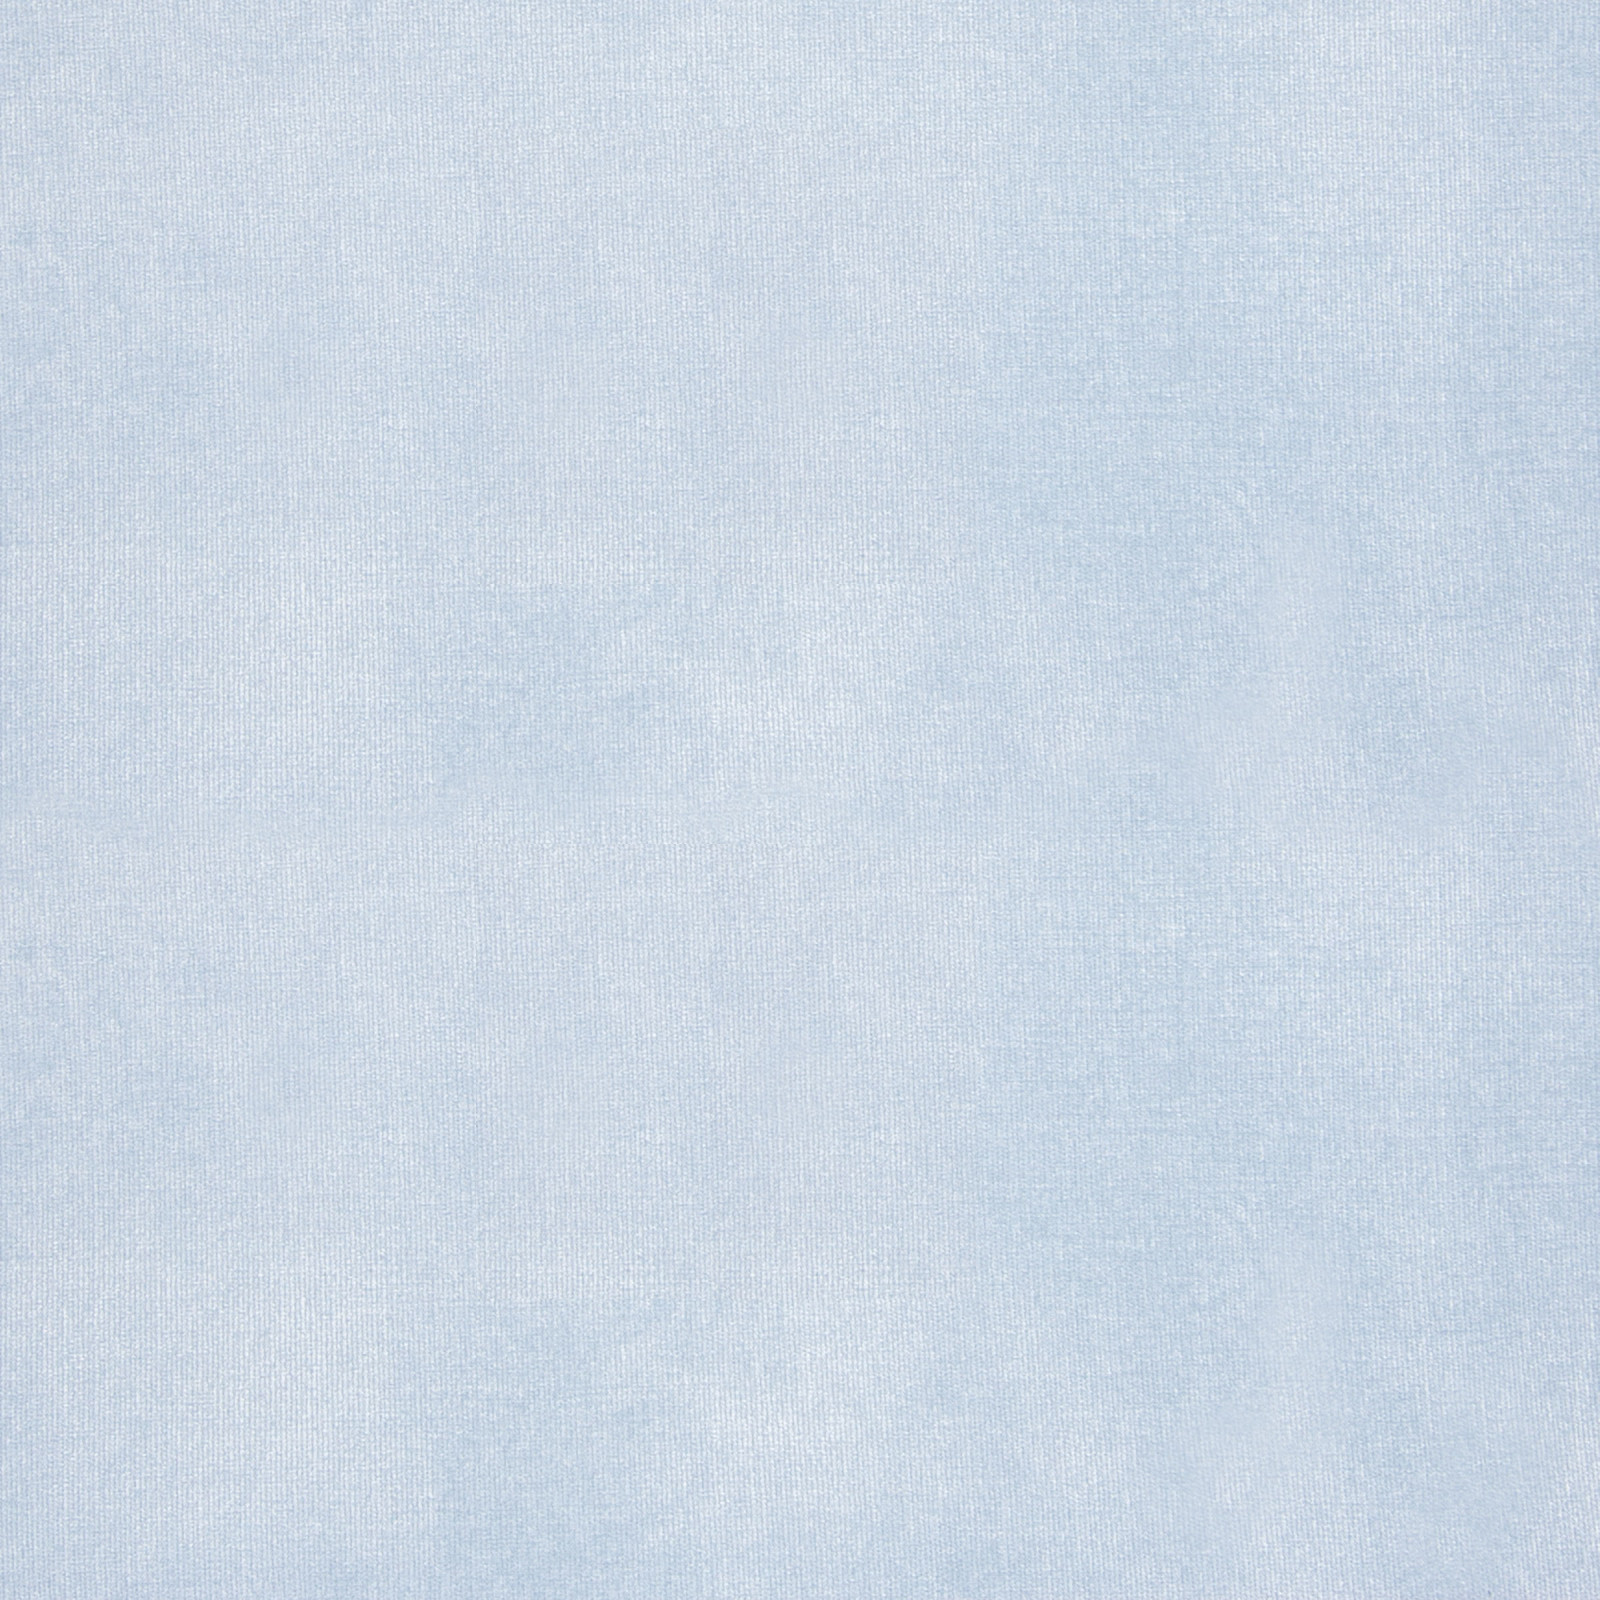 Light Blue Blue Solid Woven Upholstery Fabric